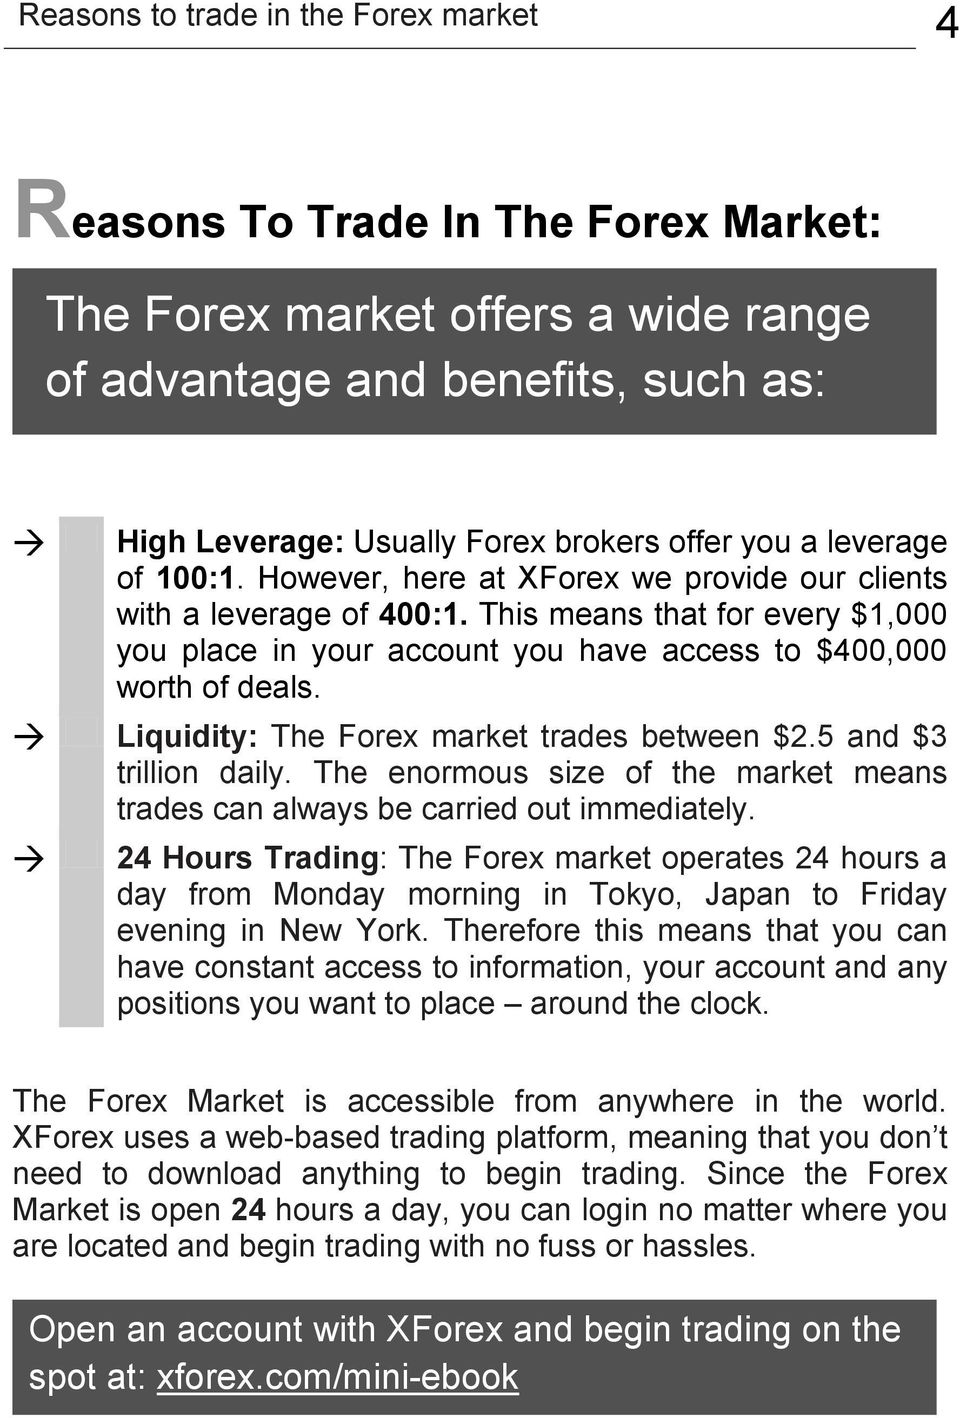 Liquidity: The Forex market trades between $2.5 and $3 trillion daily. The enormous size of the market means trades can always be carried out immediately.